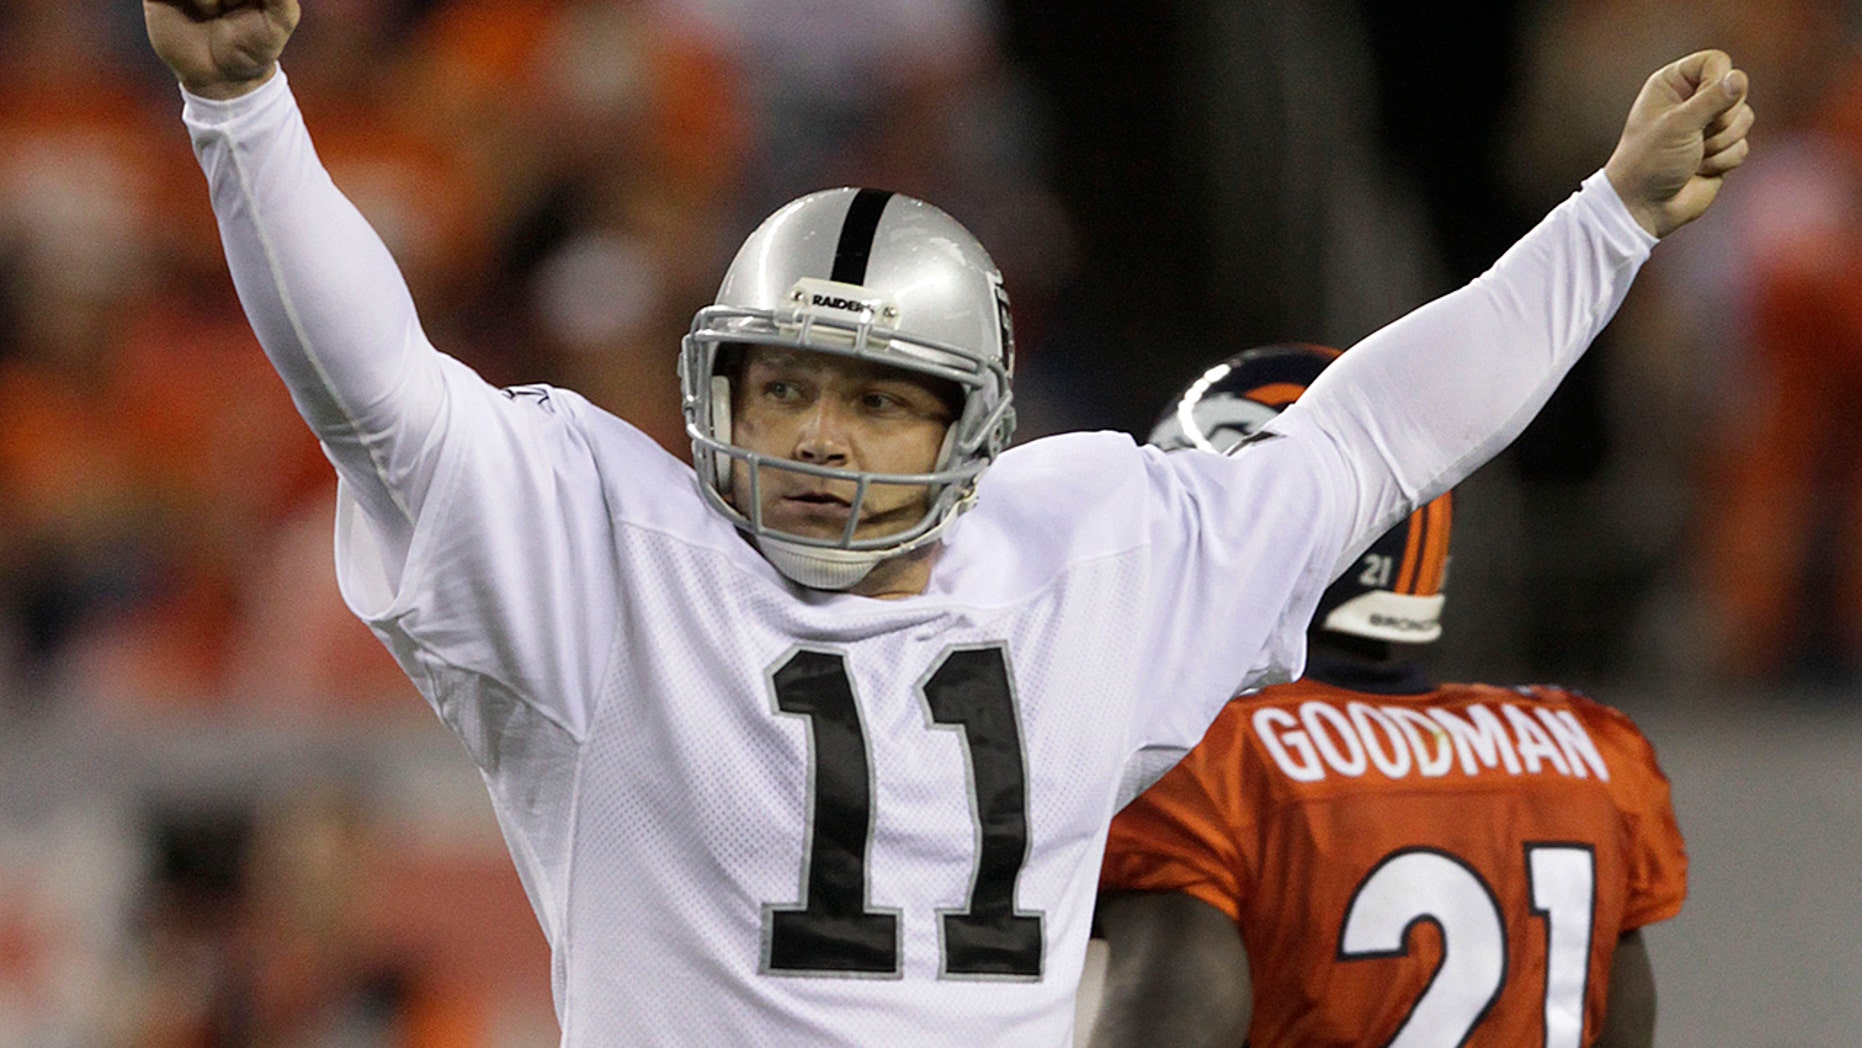 FILE - In this Sept. 12, 2011, file photo, Oakland Raiders kicker Sebastian Janikowski (11) reacts after kicking a 63-yard field goal against the Denver Broncos in the second quarter of an NFL football game, in Denver. (AP Photo/Joe Mahoney, File)